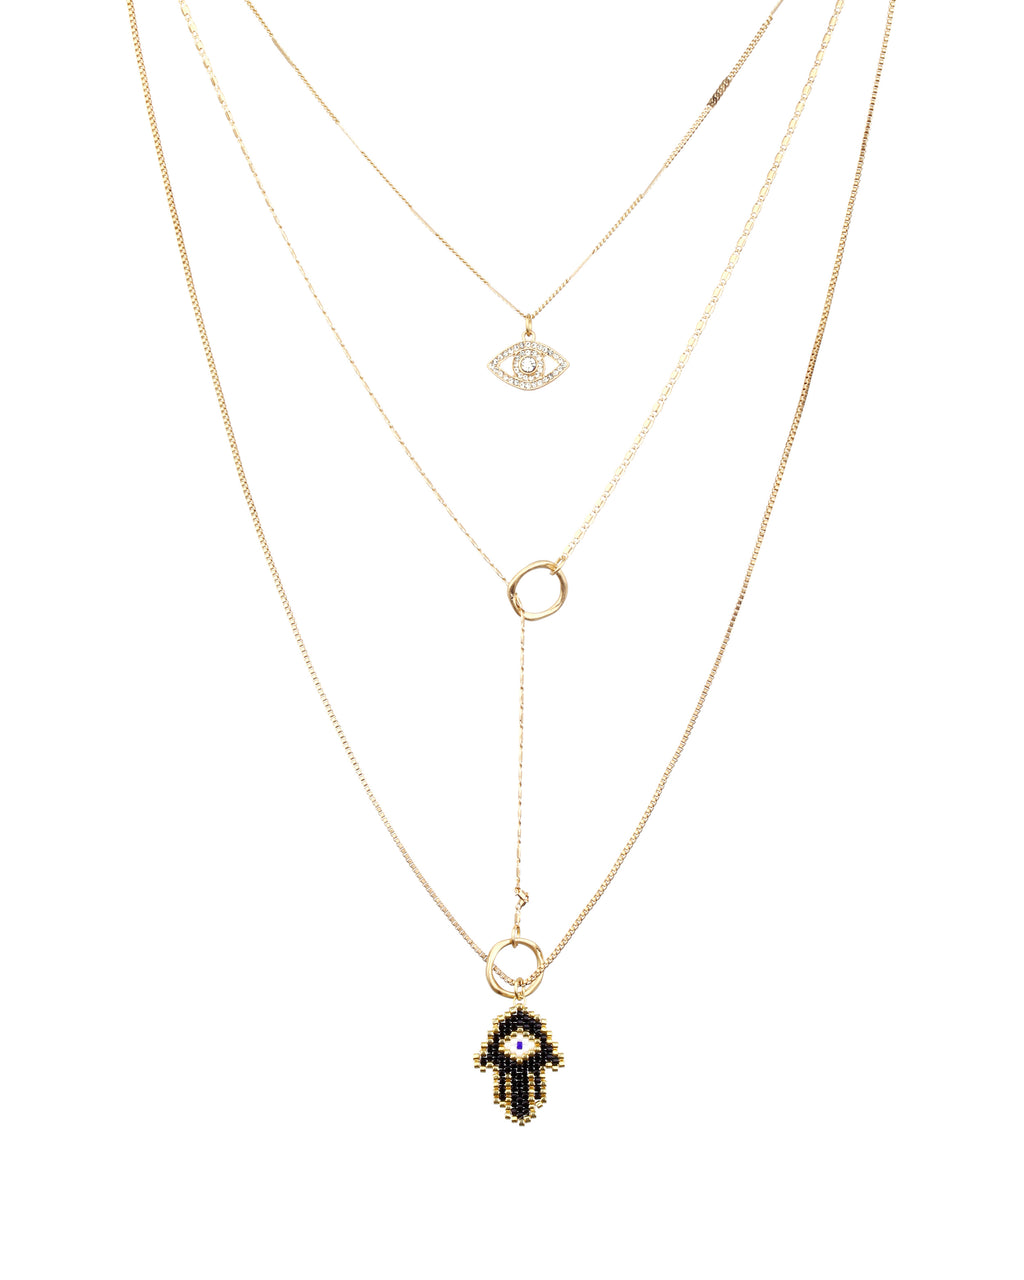 FJ15261 - MULTI LAYERED HAMSA NECKLACE - accessories - jewelry - This perfectly layered piece has 3 different chains and features a jeweled evil eye and beaded hamsa hand. The second and third chain link with a cool circle charm that ties the whole thing together.